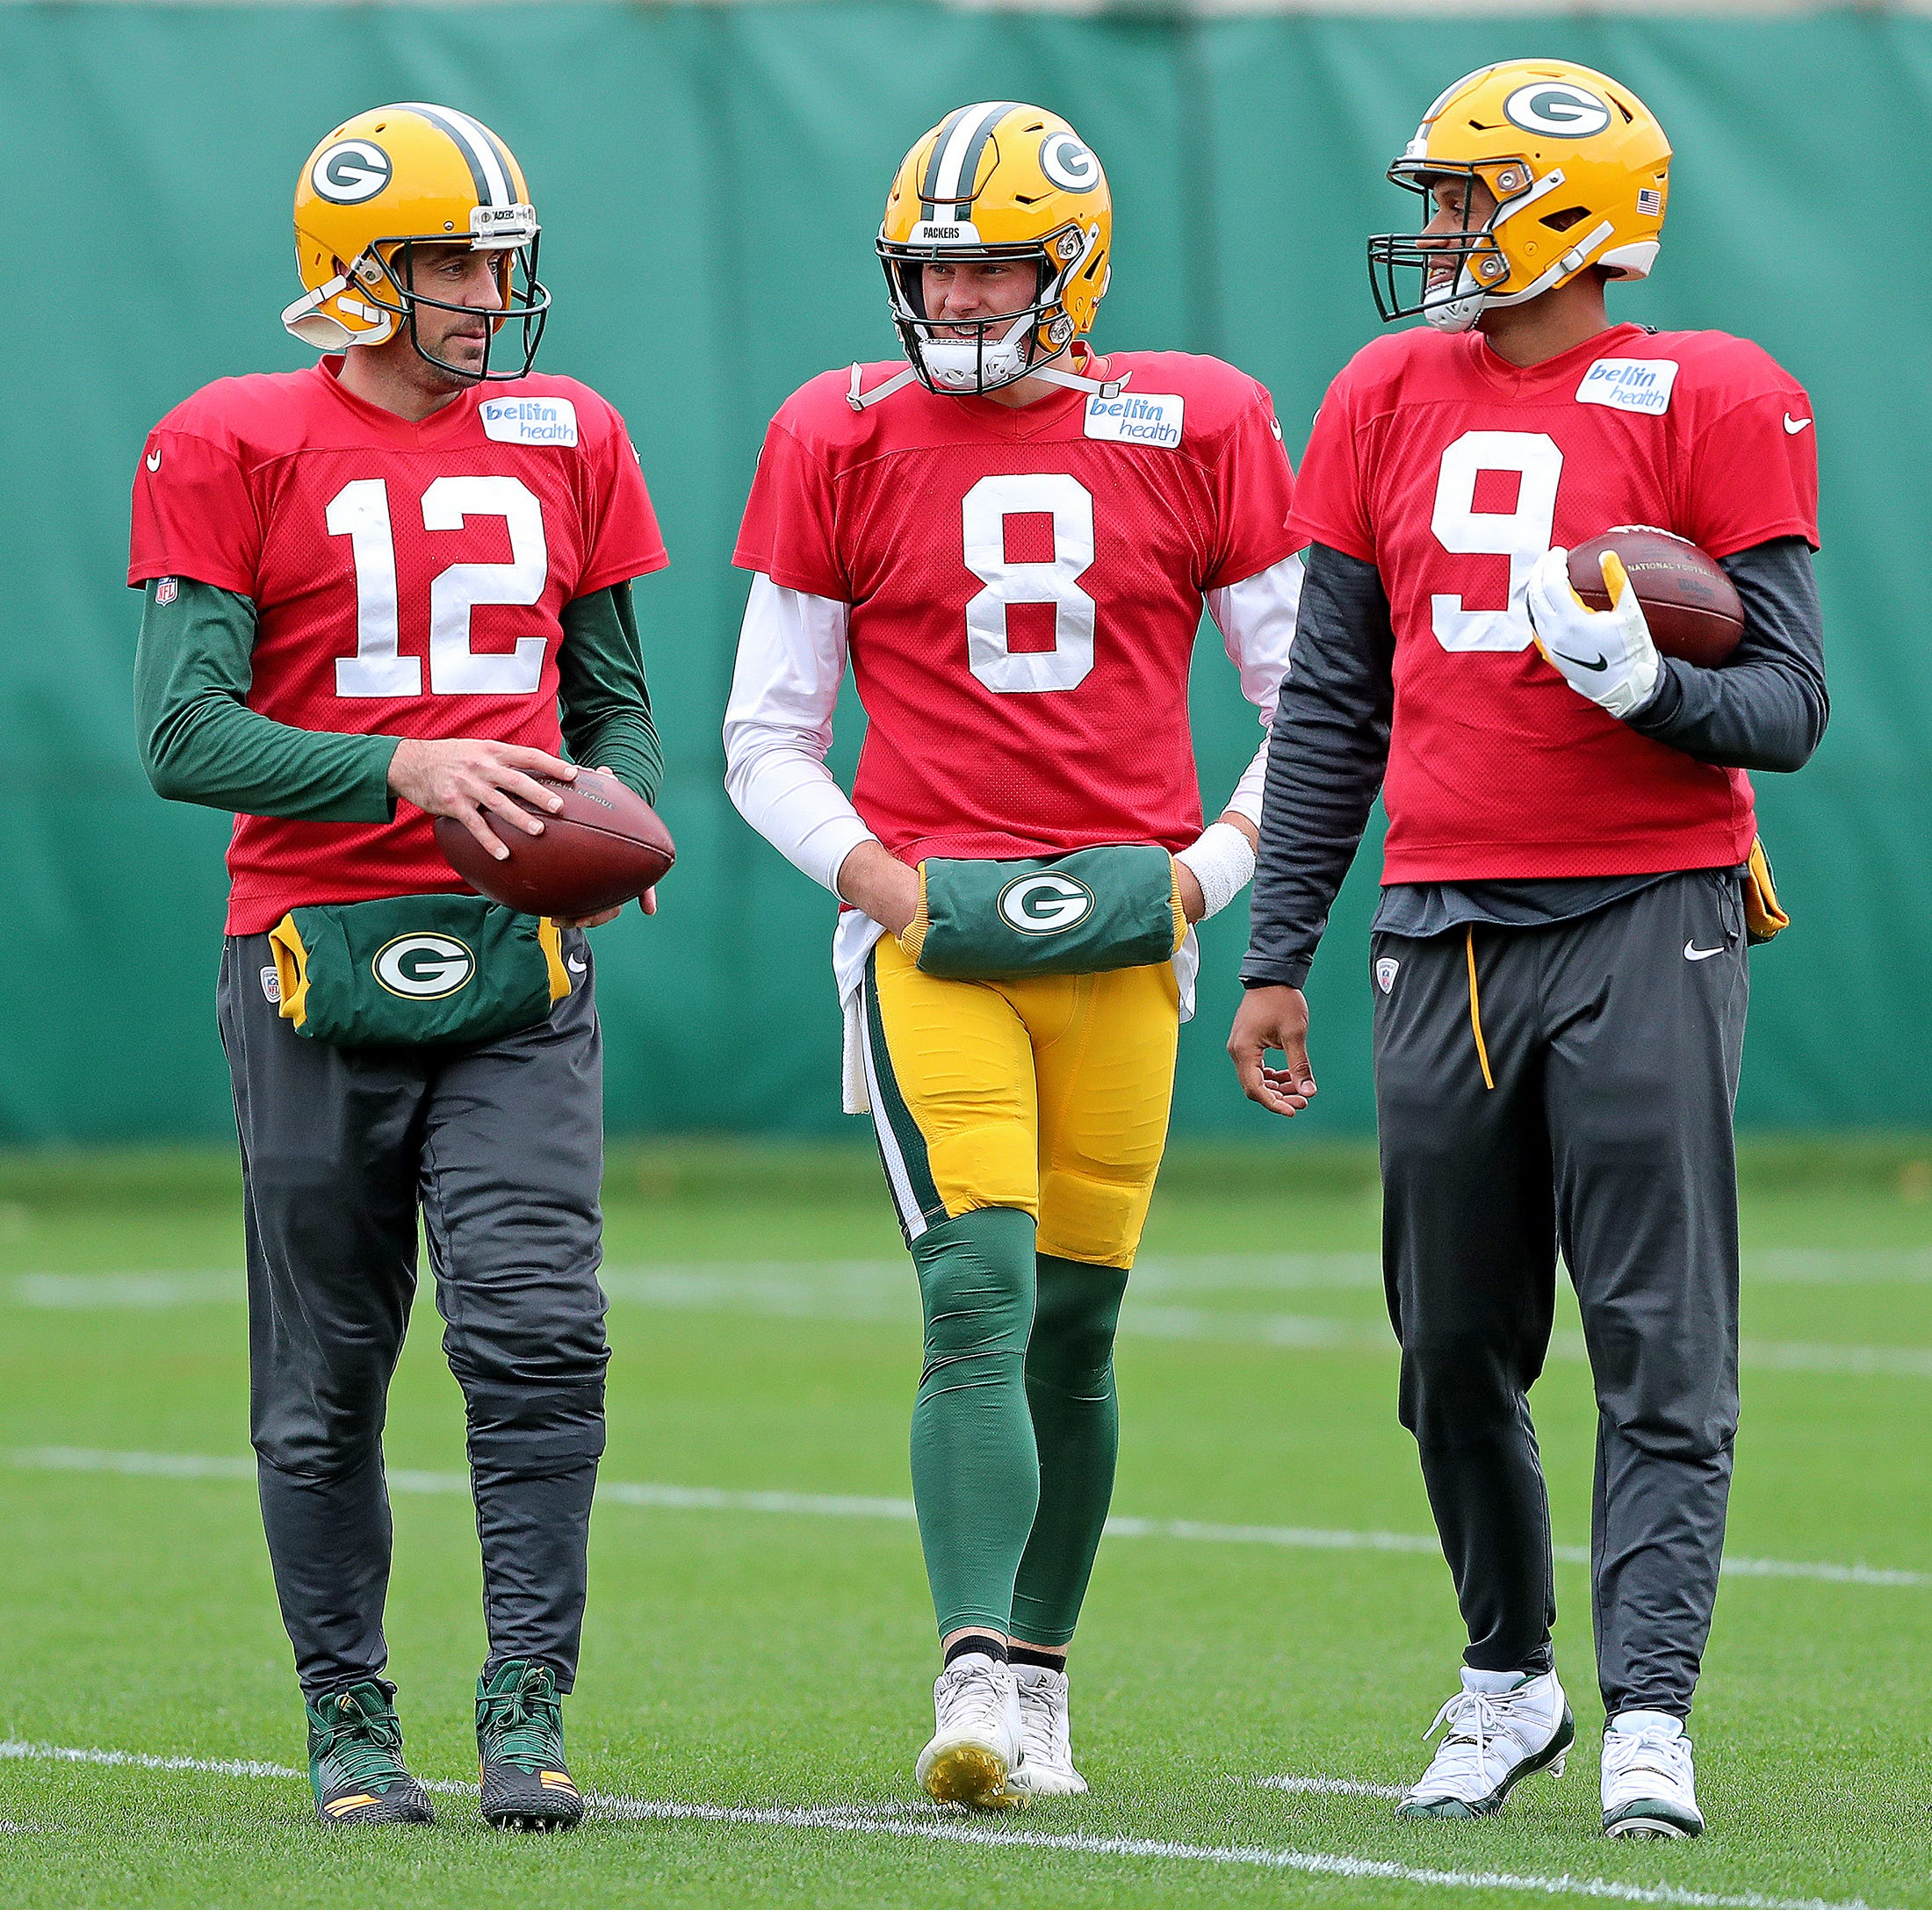 Packers RosterBuilder preview: Offense seeks Aaron Rodgers' backup, tight end solution